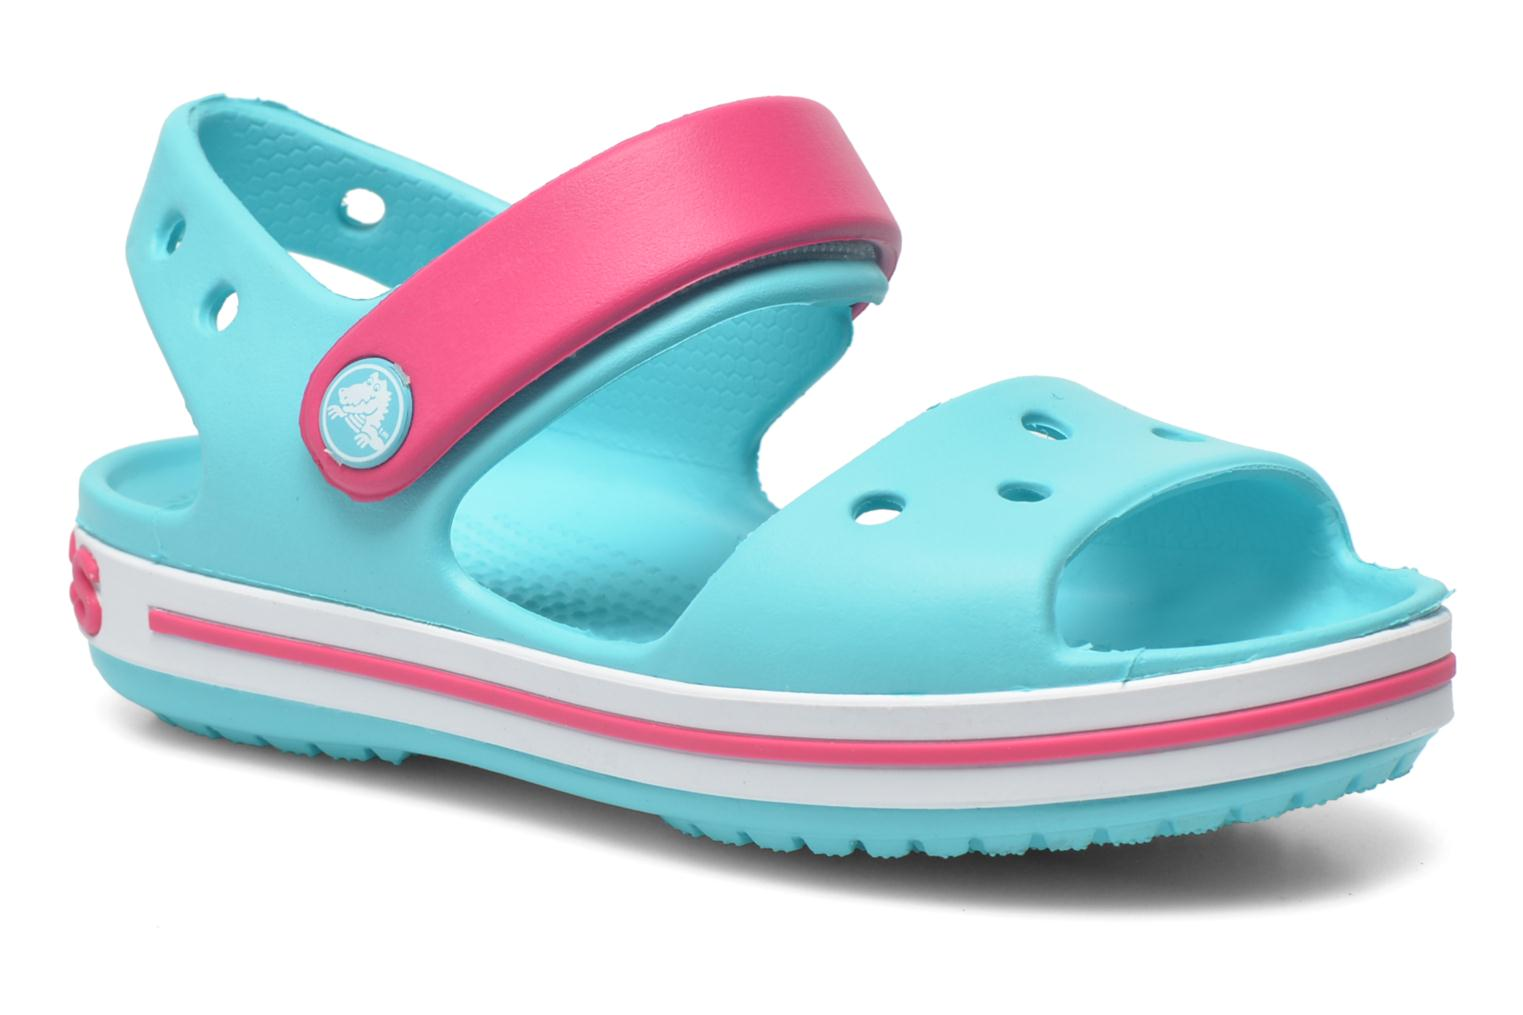 Crocband Sandal Kids Pool/Candy Pink